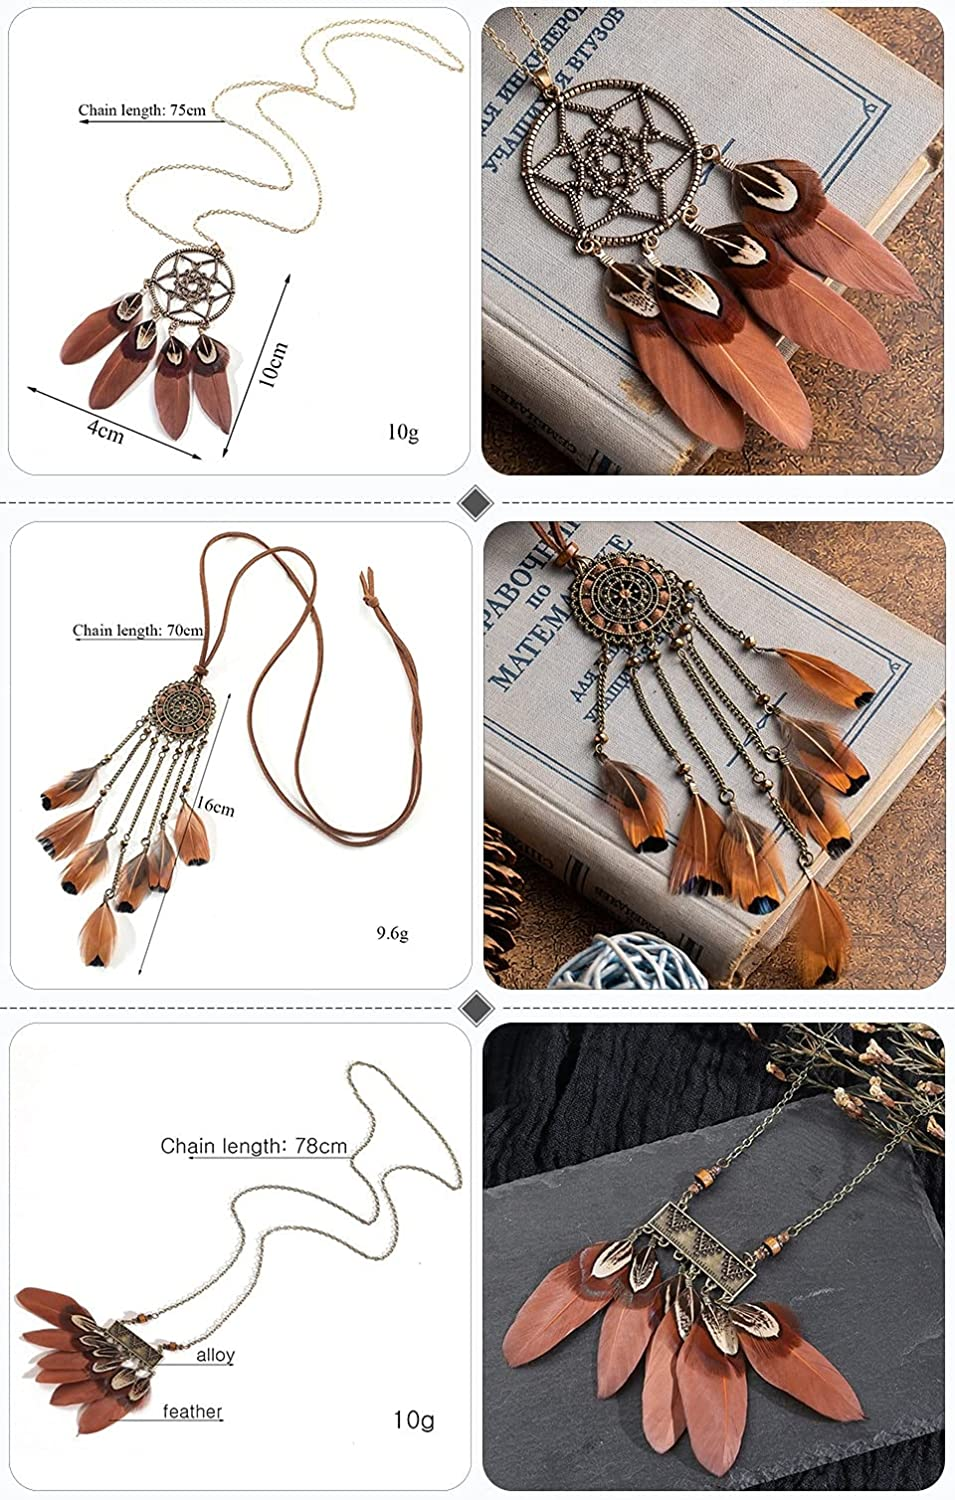 Feather Necklaces For Women Ethnic Long Black Brown Feather Leather Chain Necklaces for Women Girls Daughter Mom Vintage Dream Pendants Sweater Necklace Jewelry